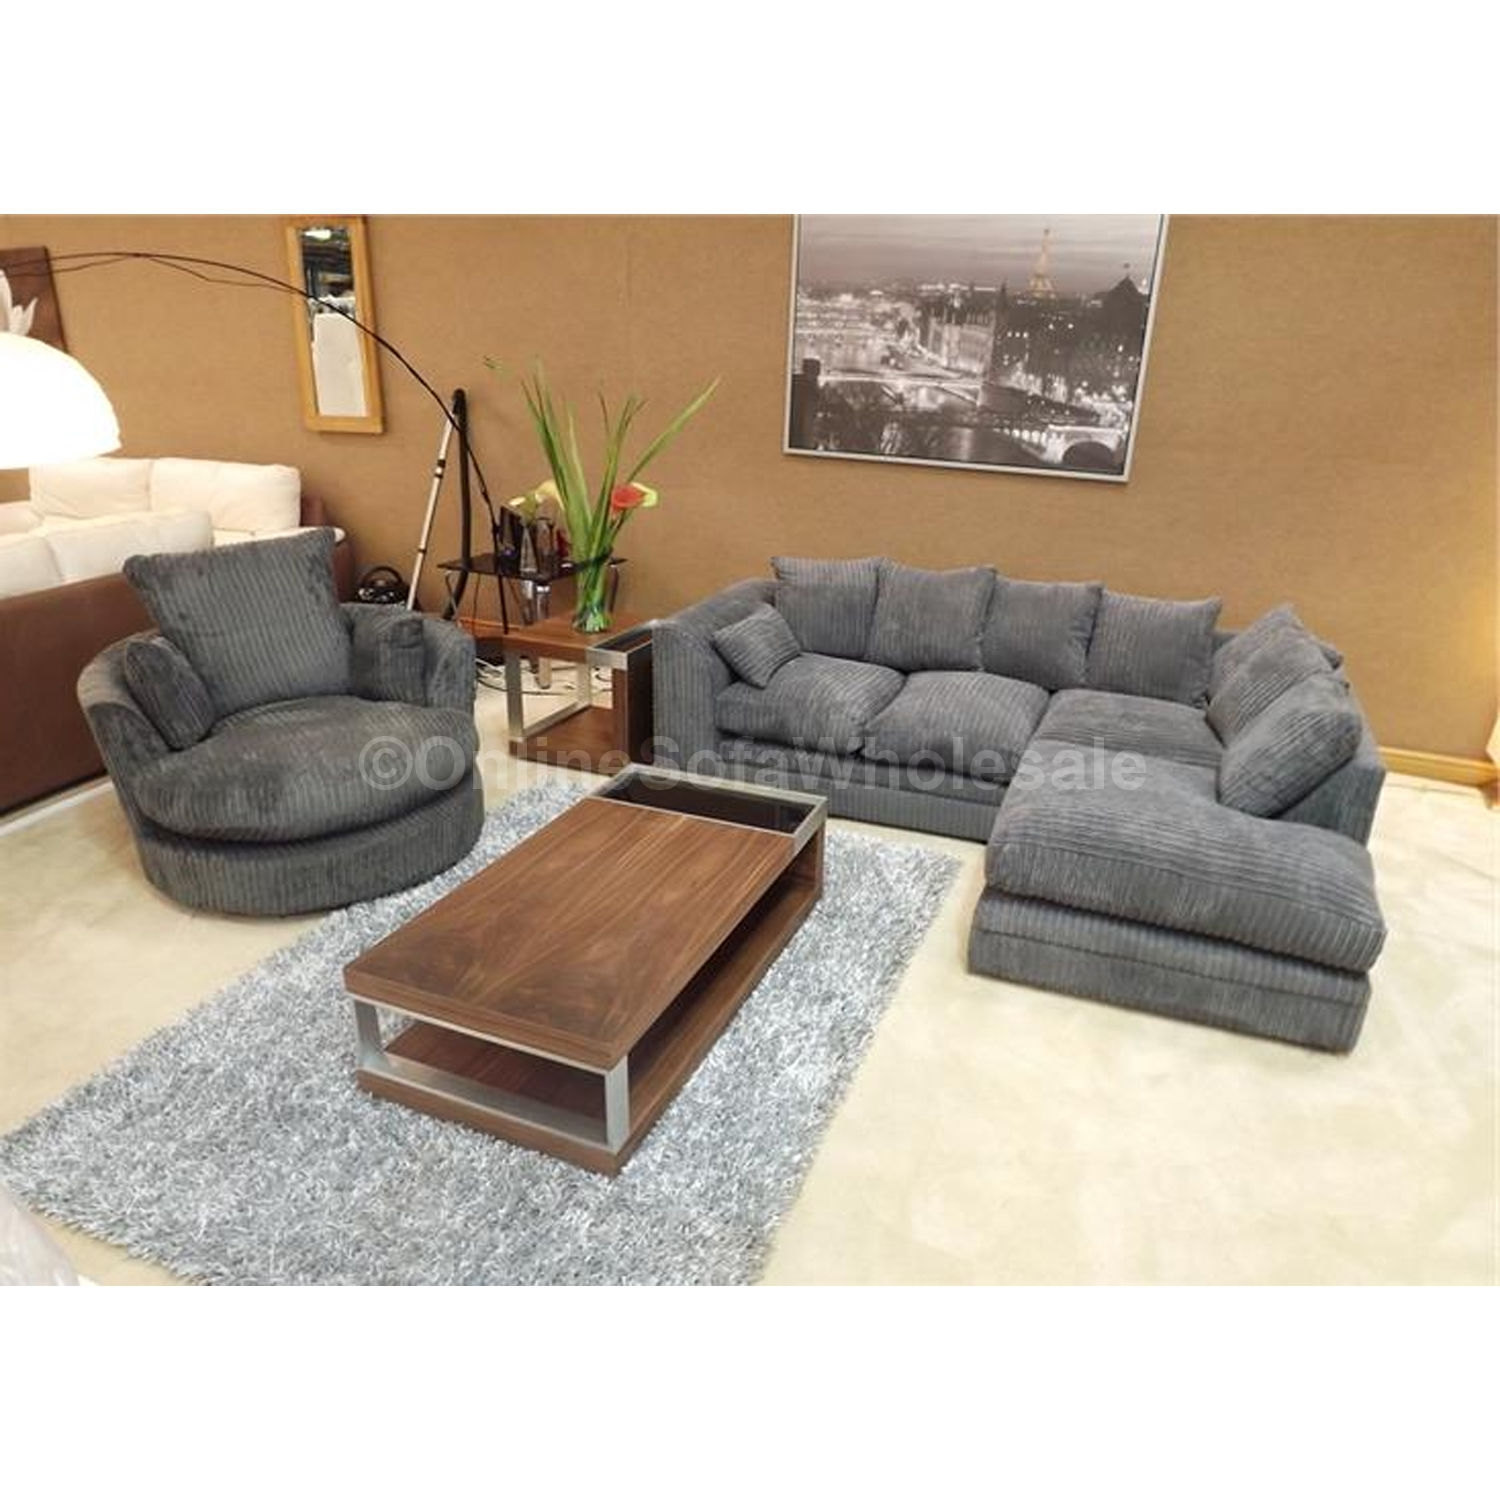 15 Corner Sofa and Swivel Chairs